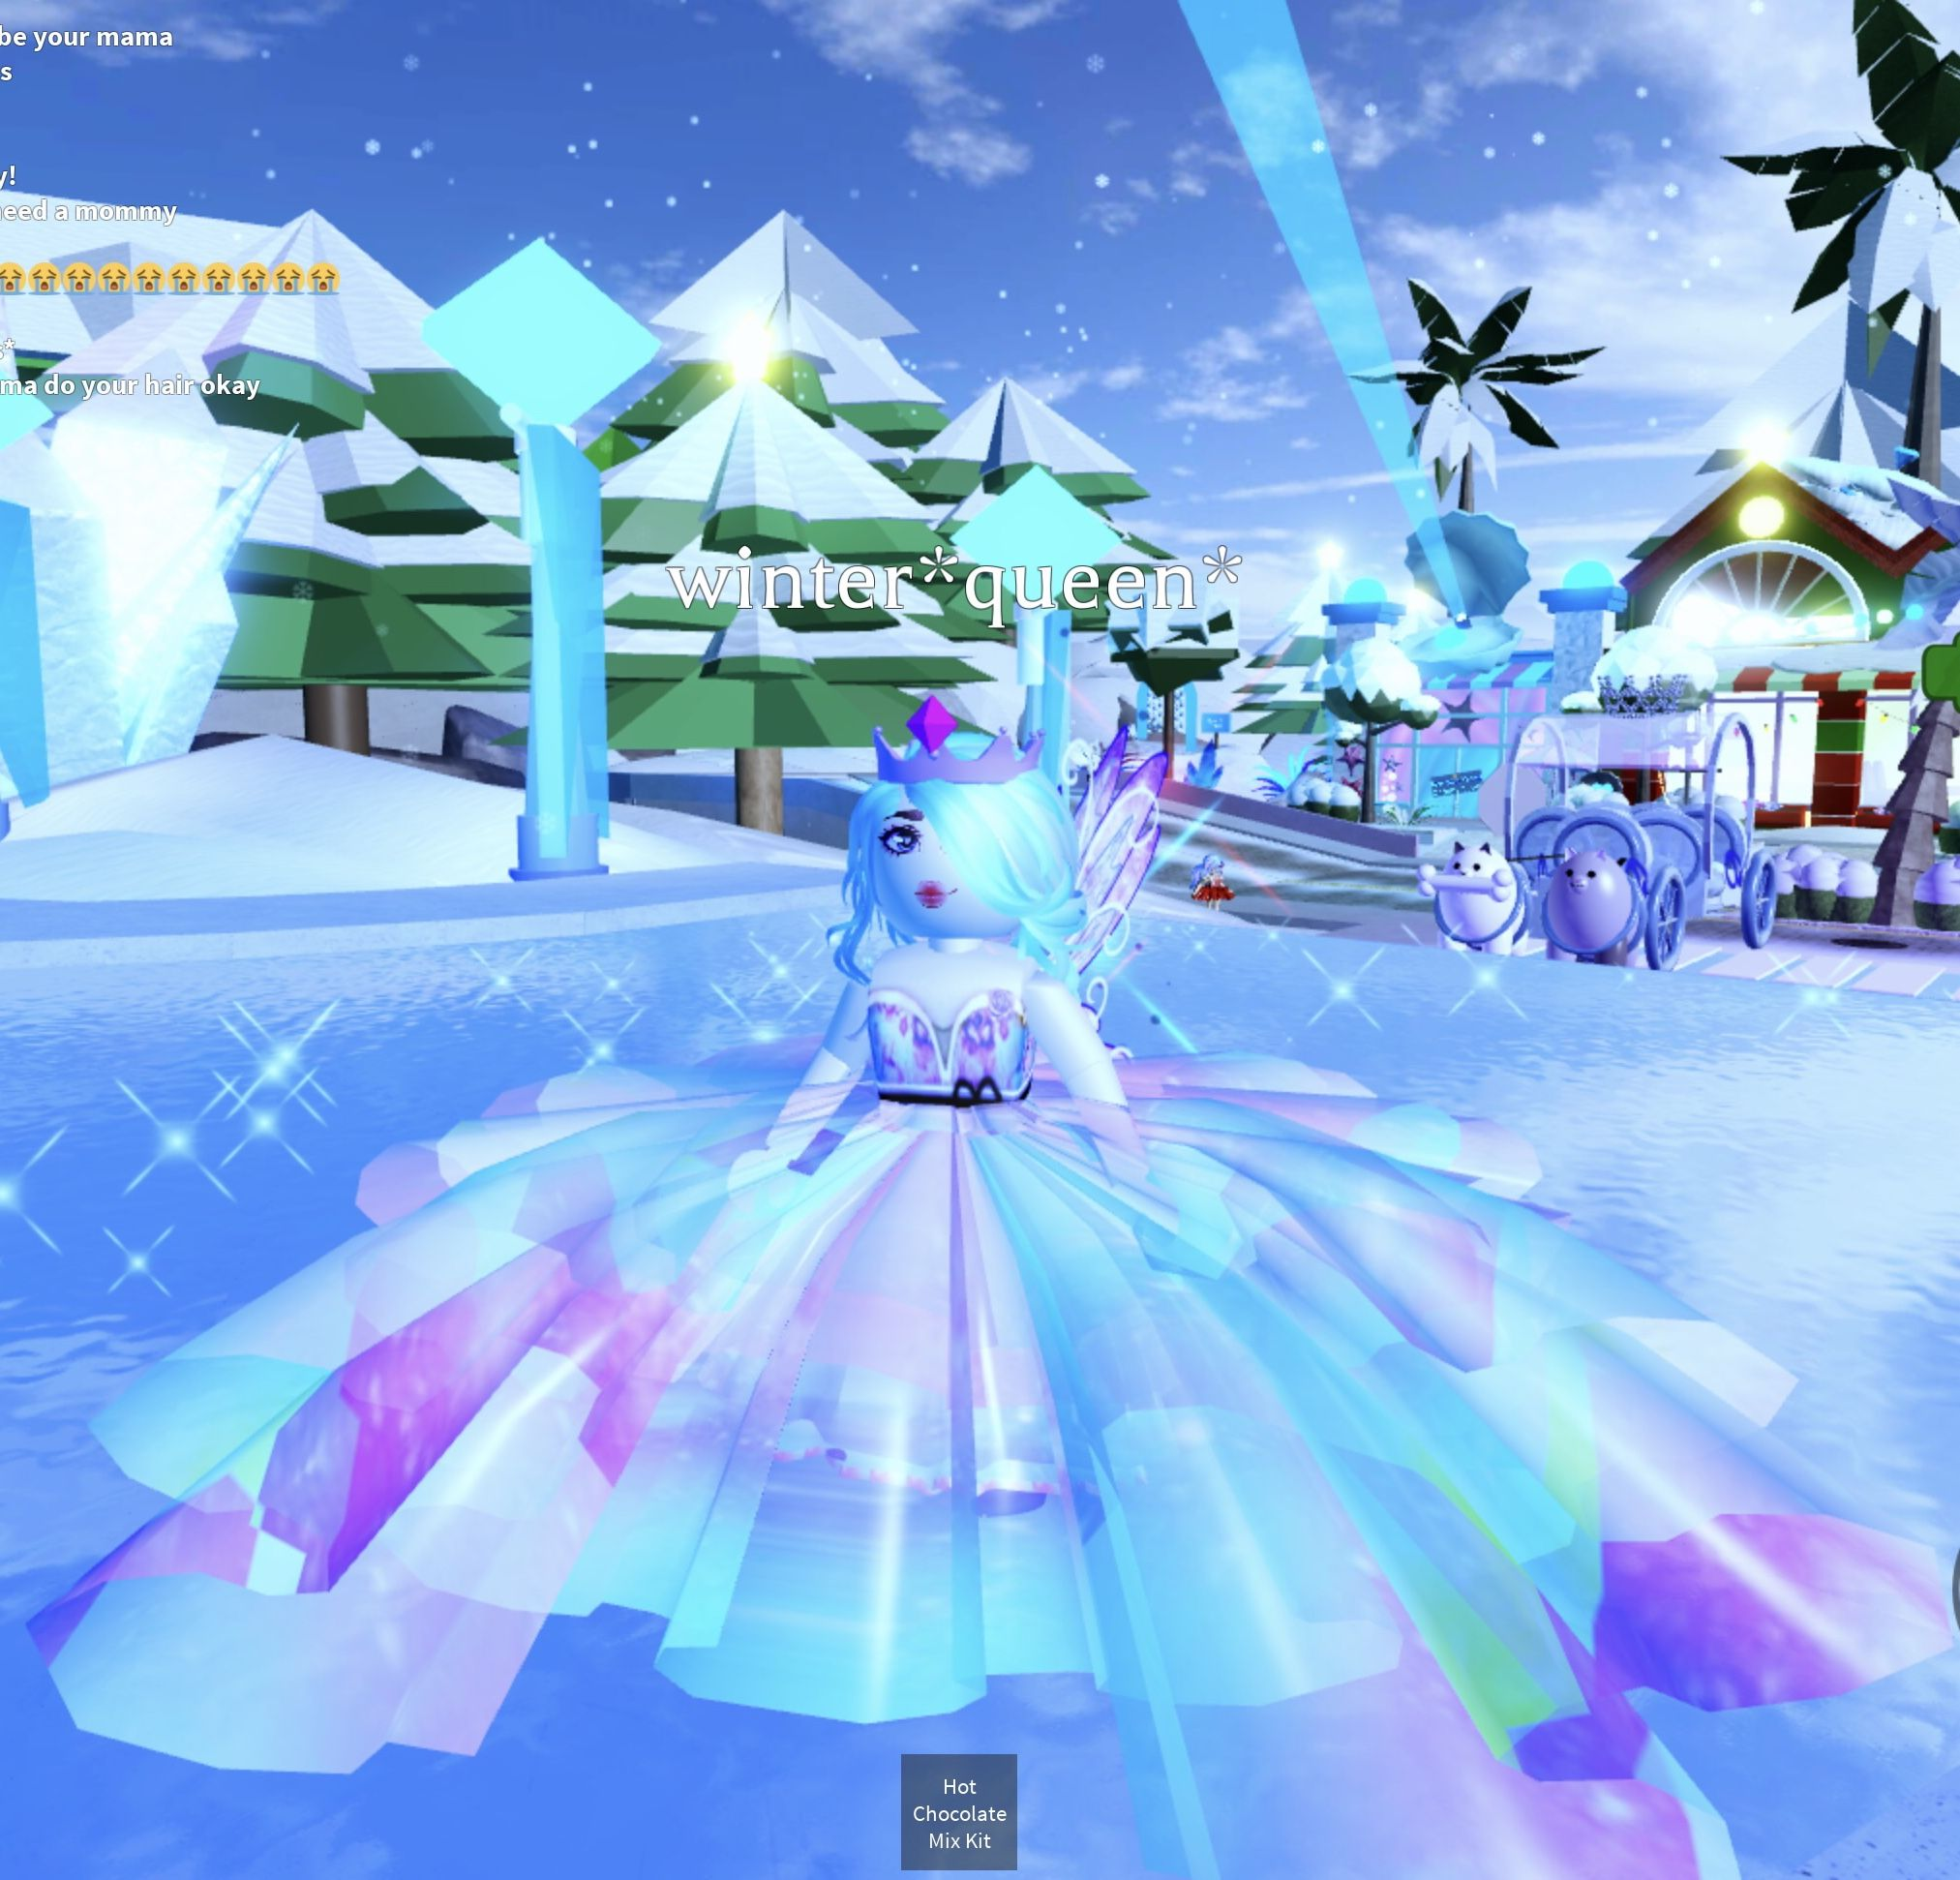 Yor Soo Cool I Love It An Yor Gress To I Neeed It Nawwwwwwwwwwwwwwwwww I Need It Nawwwwwwwwwwwwwwwwww High Pictures Wings Of Fire Dragons Roblox Pictures